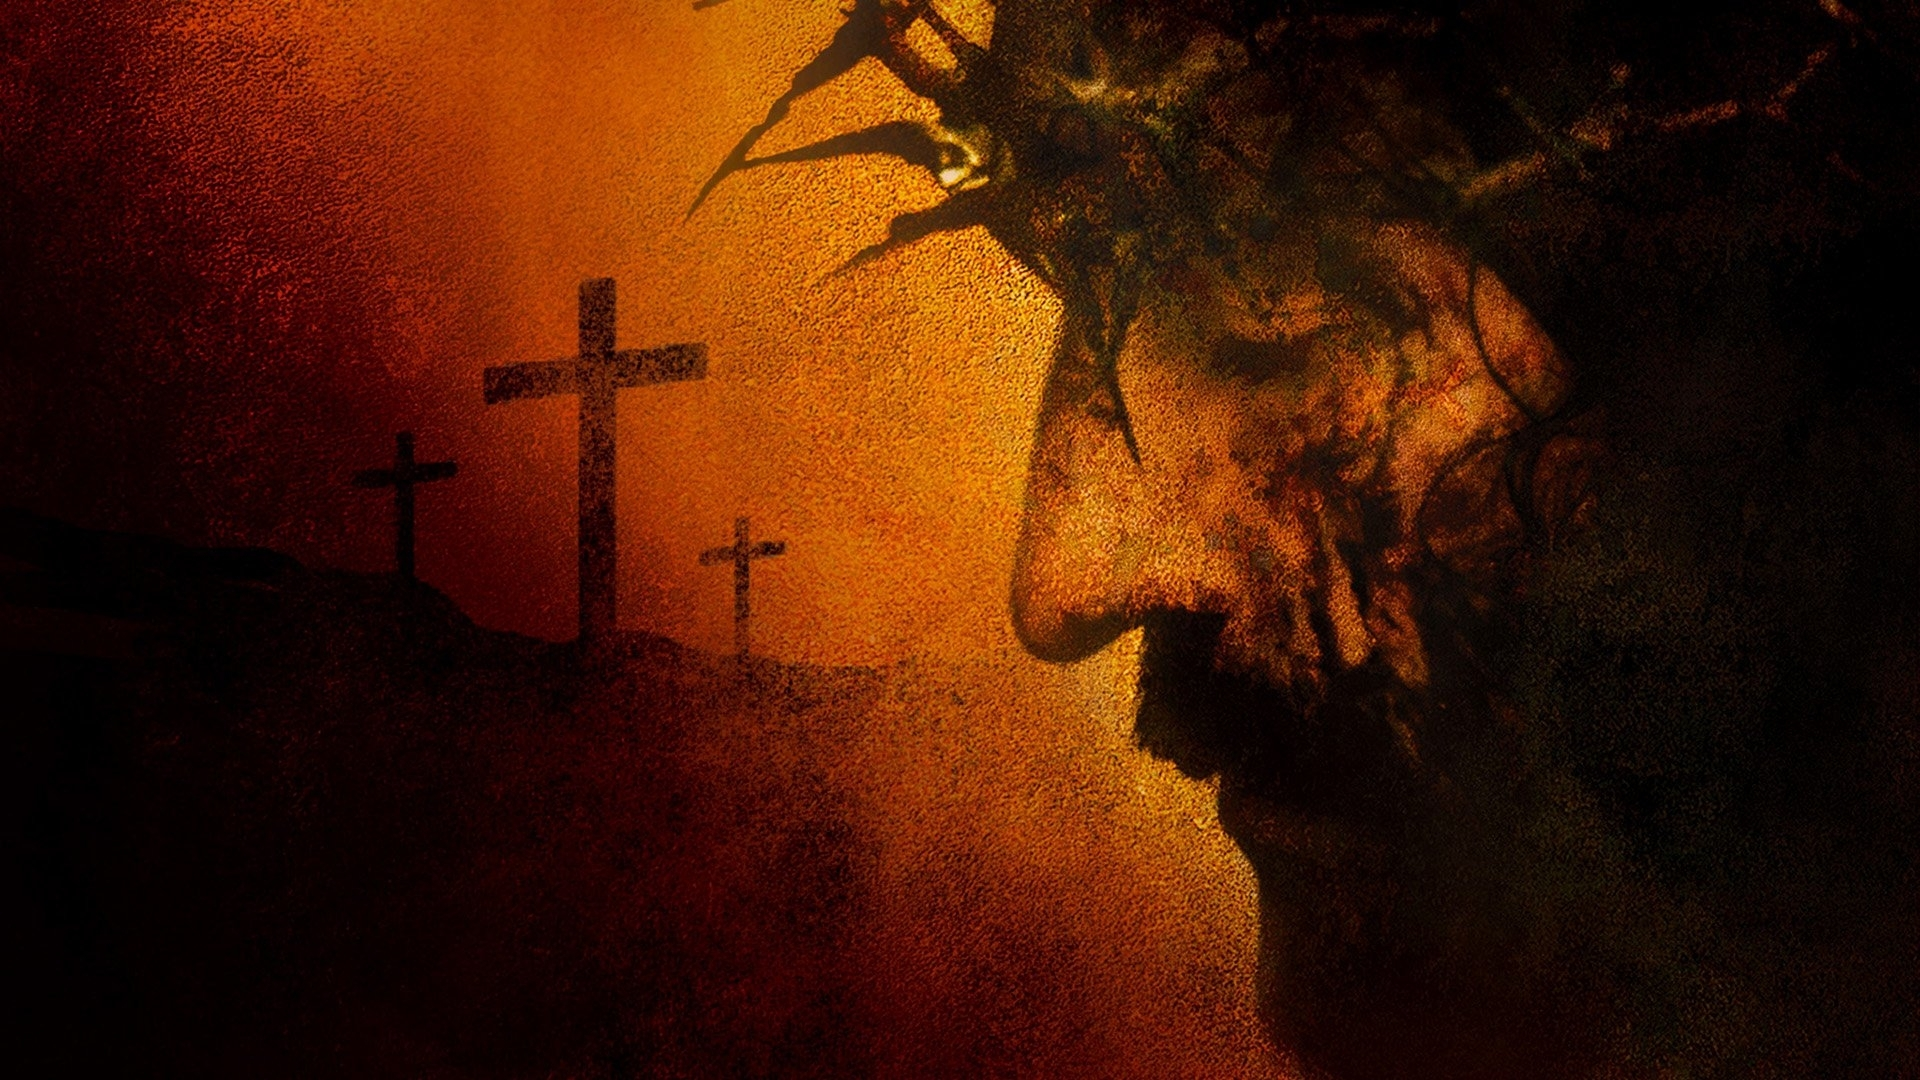 10 New The Passion Of The Christ Wallpaper FULL HD 1920×1080 For PC Desktop